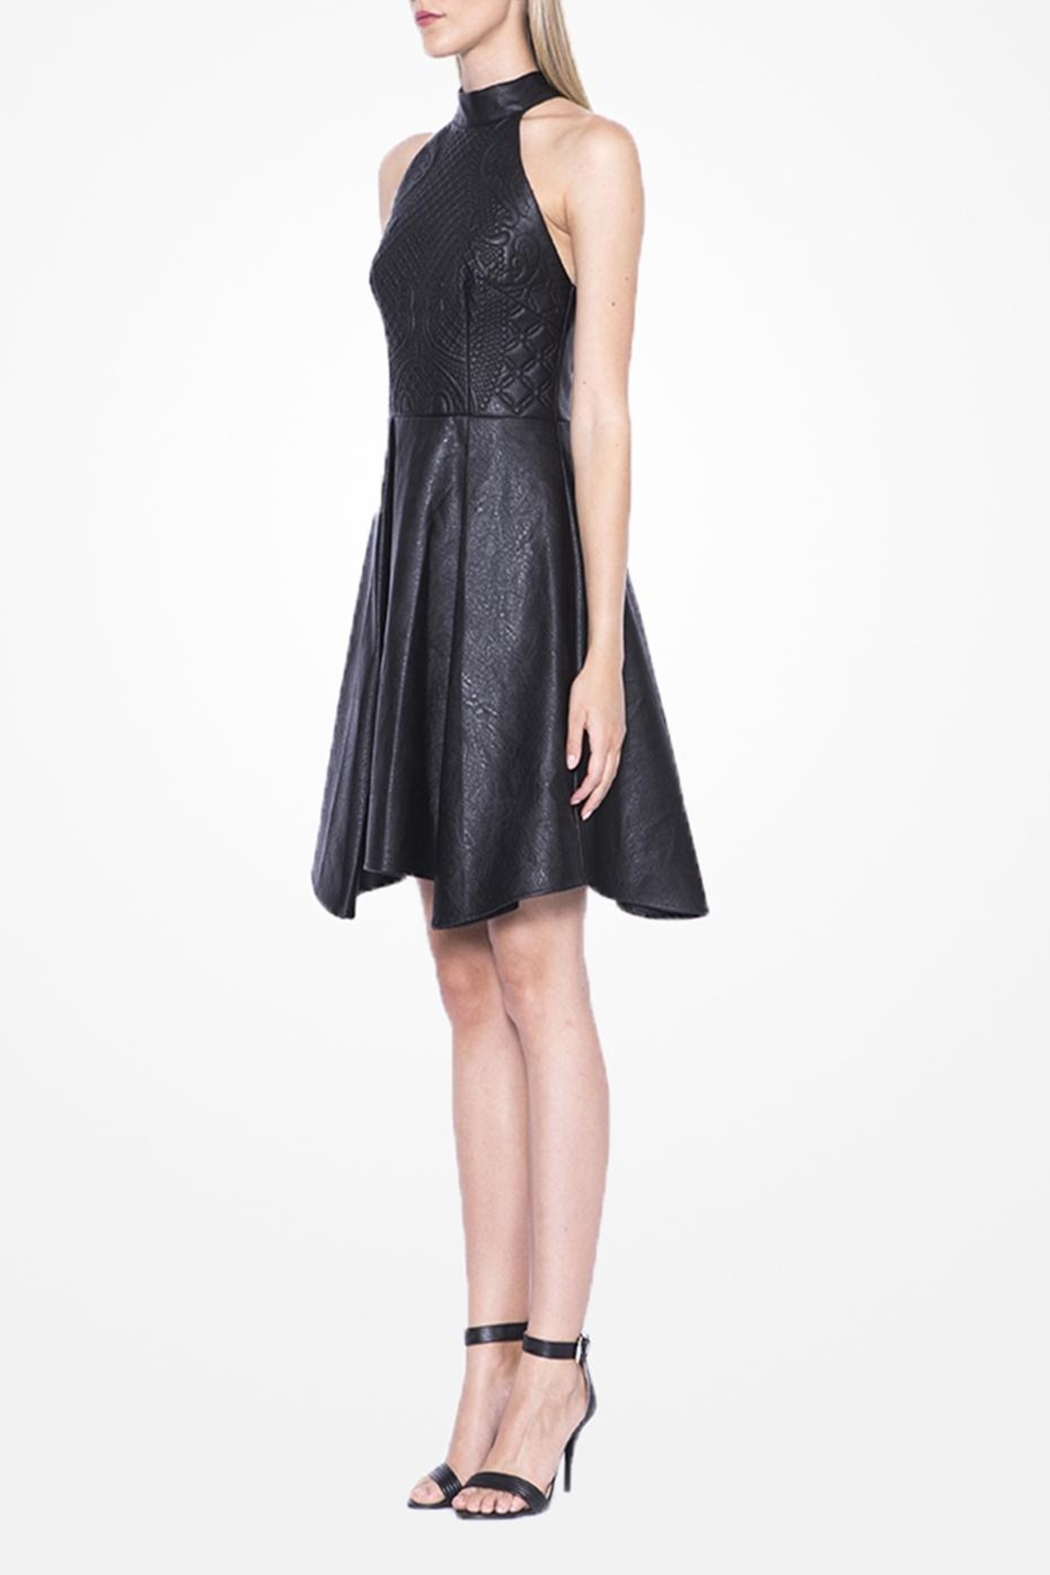 Lumiere Lumier Halter Dress - Front Full Image